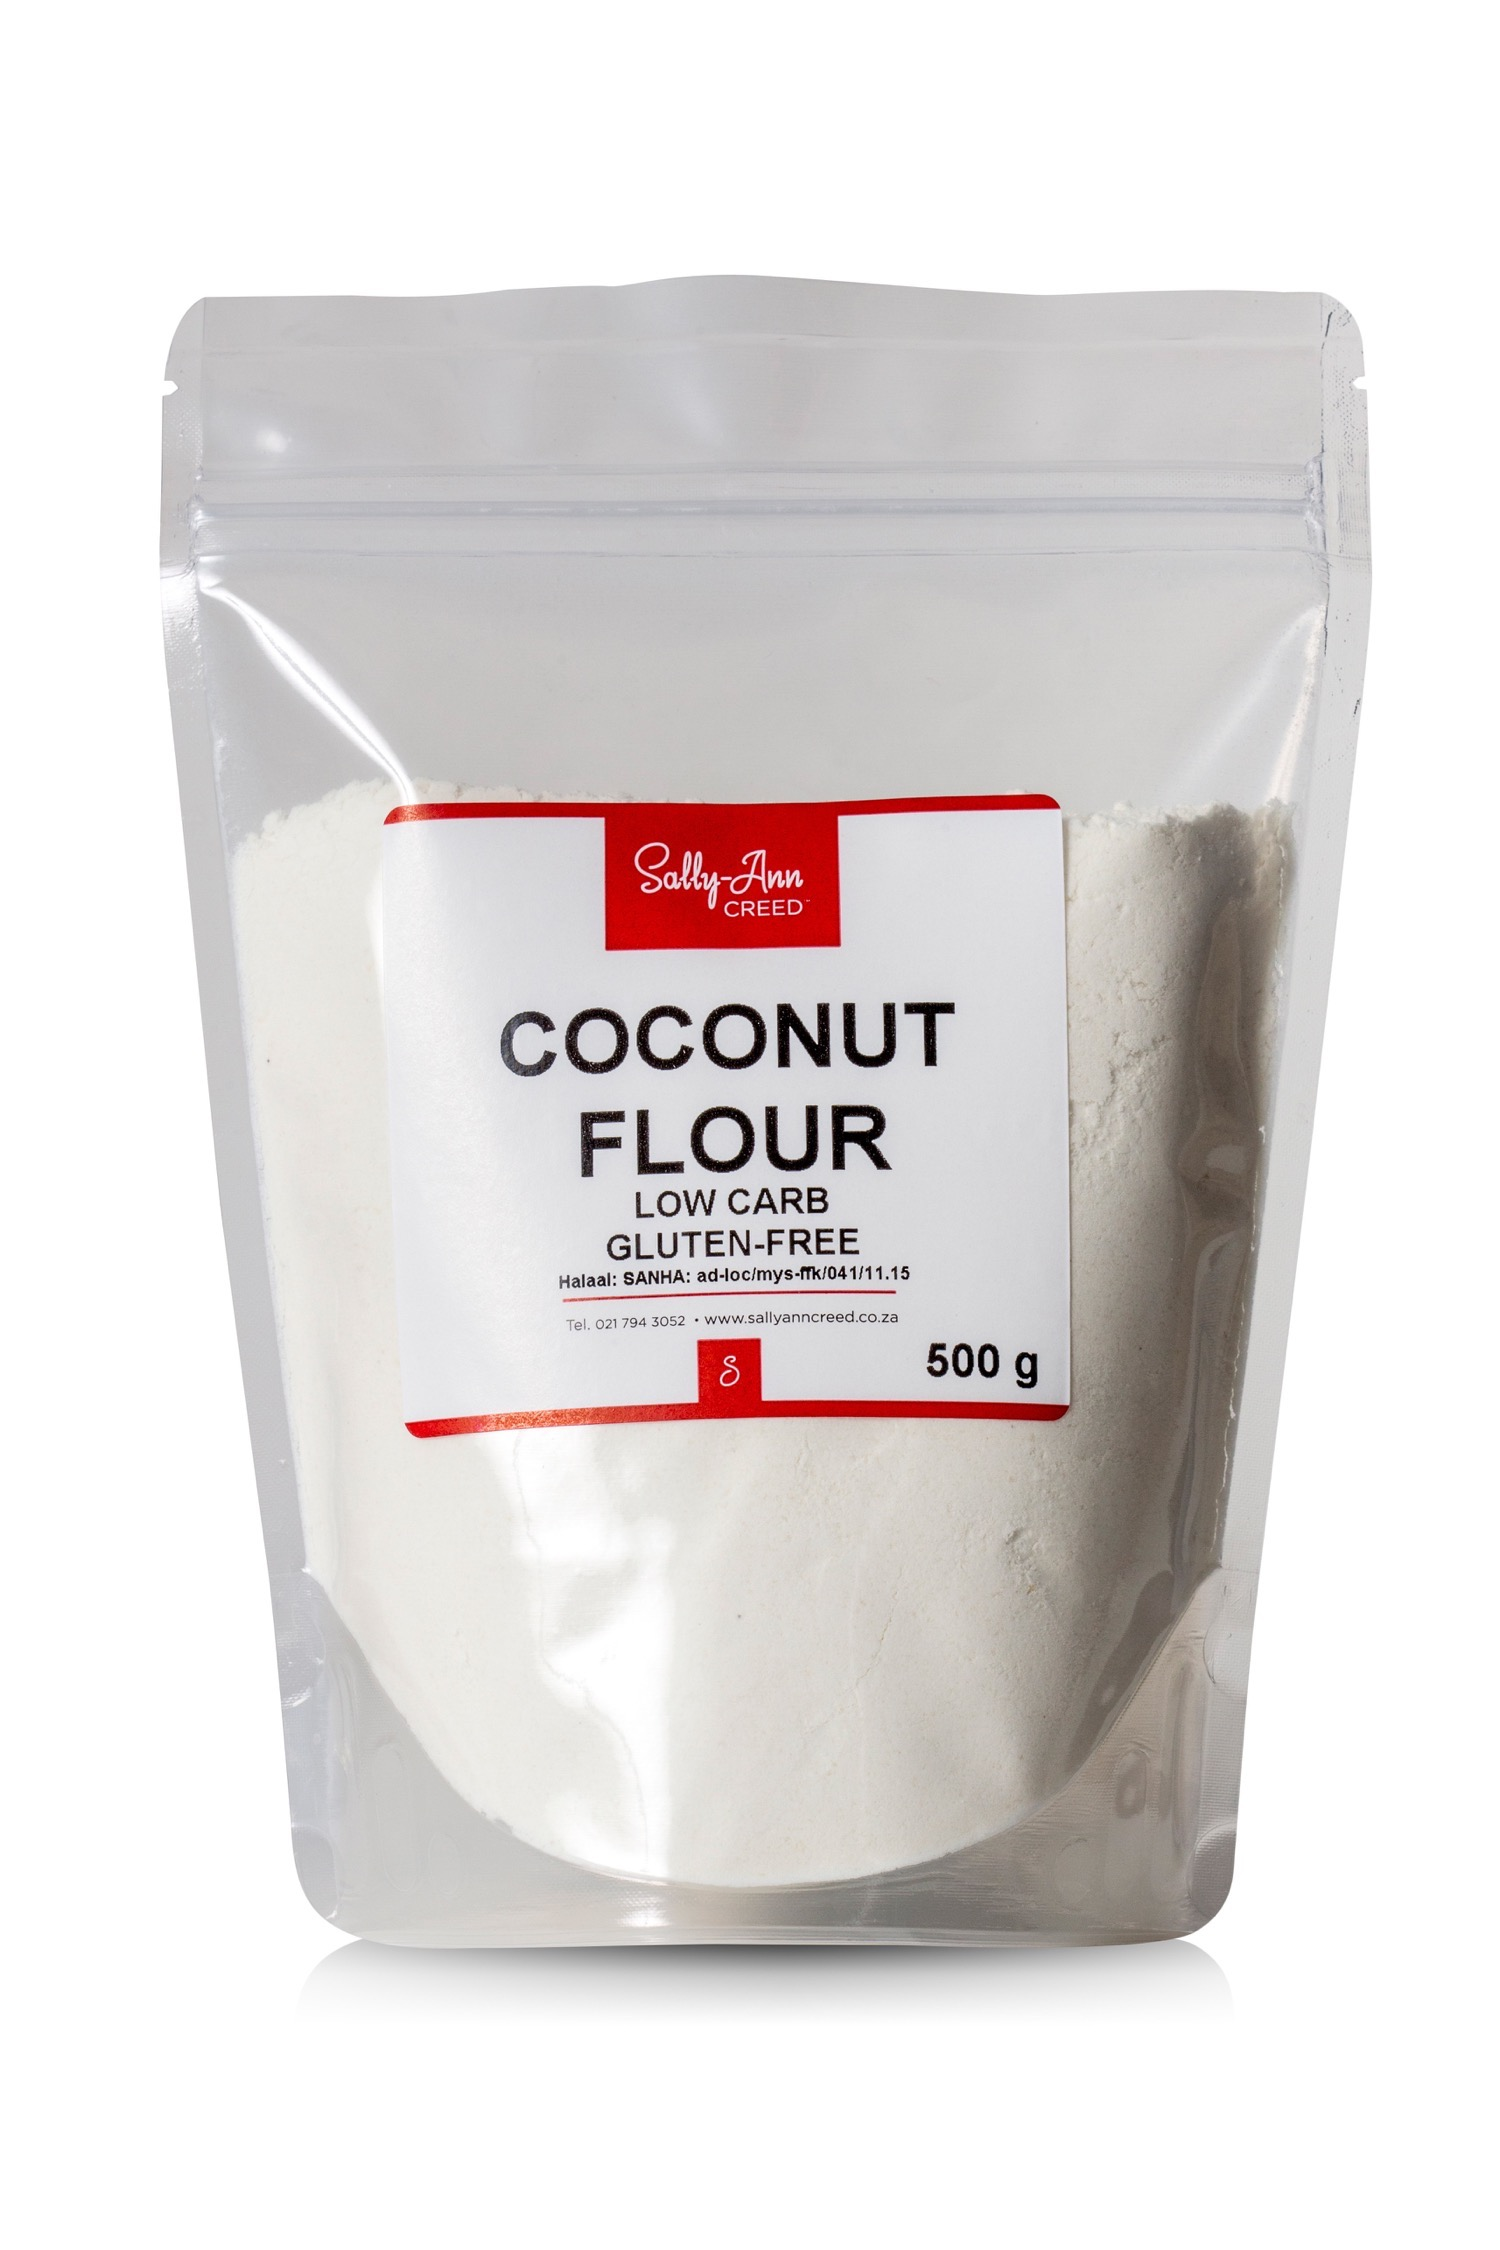 Coconut flour packet